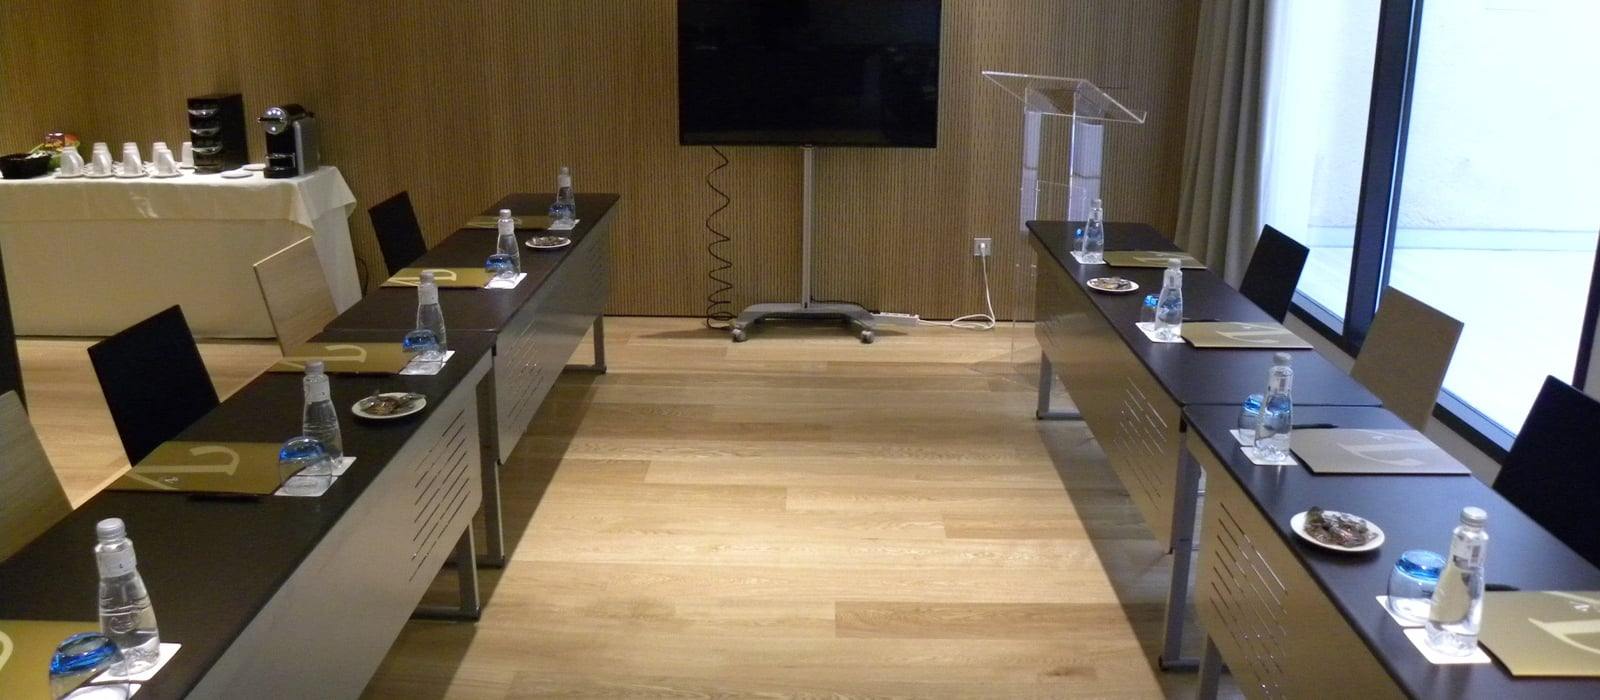 Services Hotel Barcelona Gala  - Vincci Hotels - Meeting Rooms